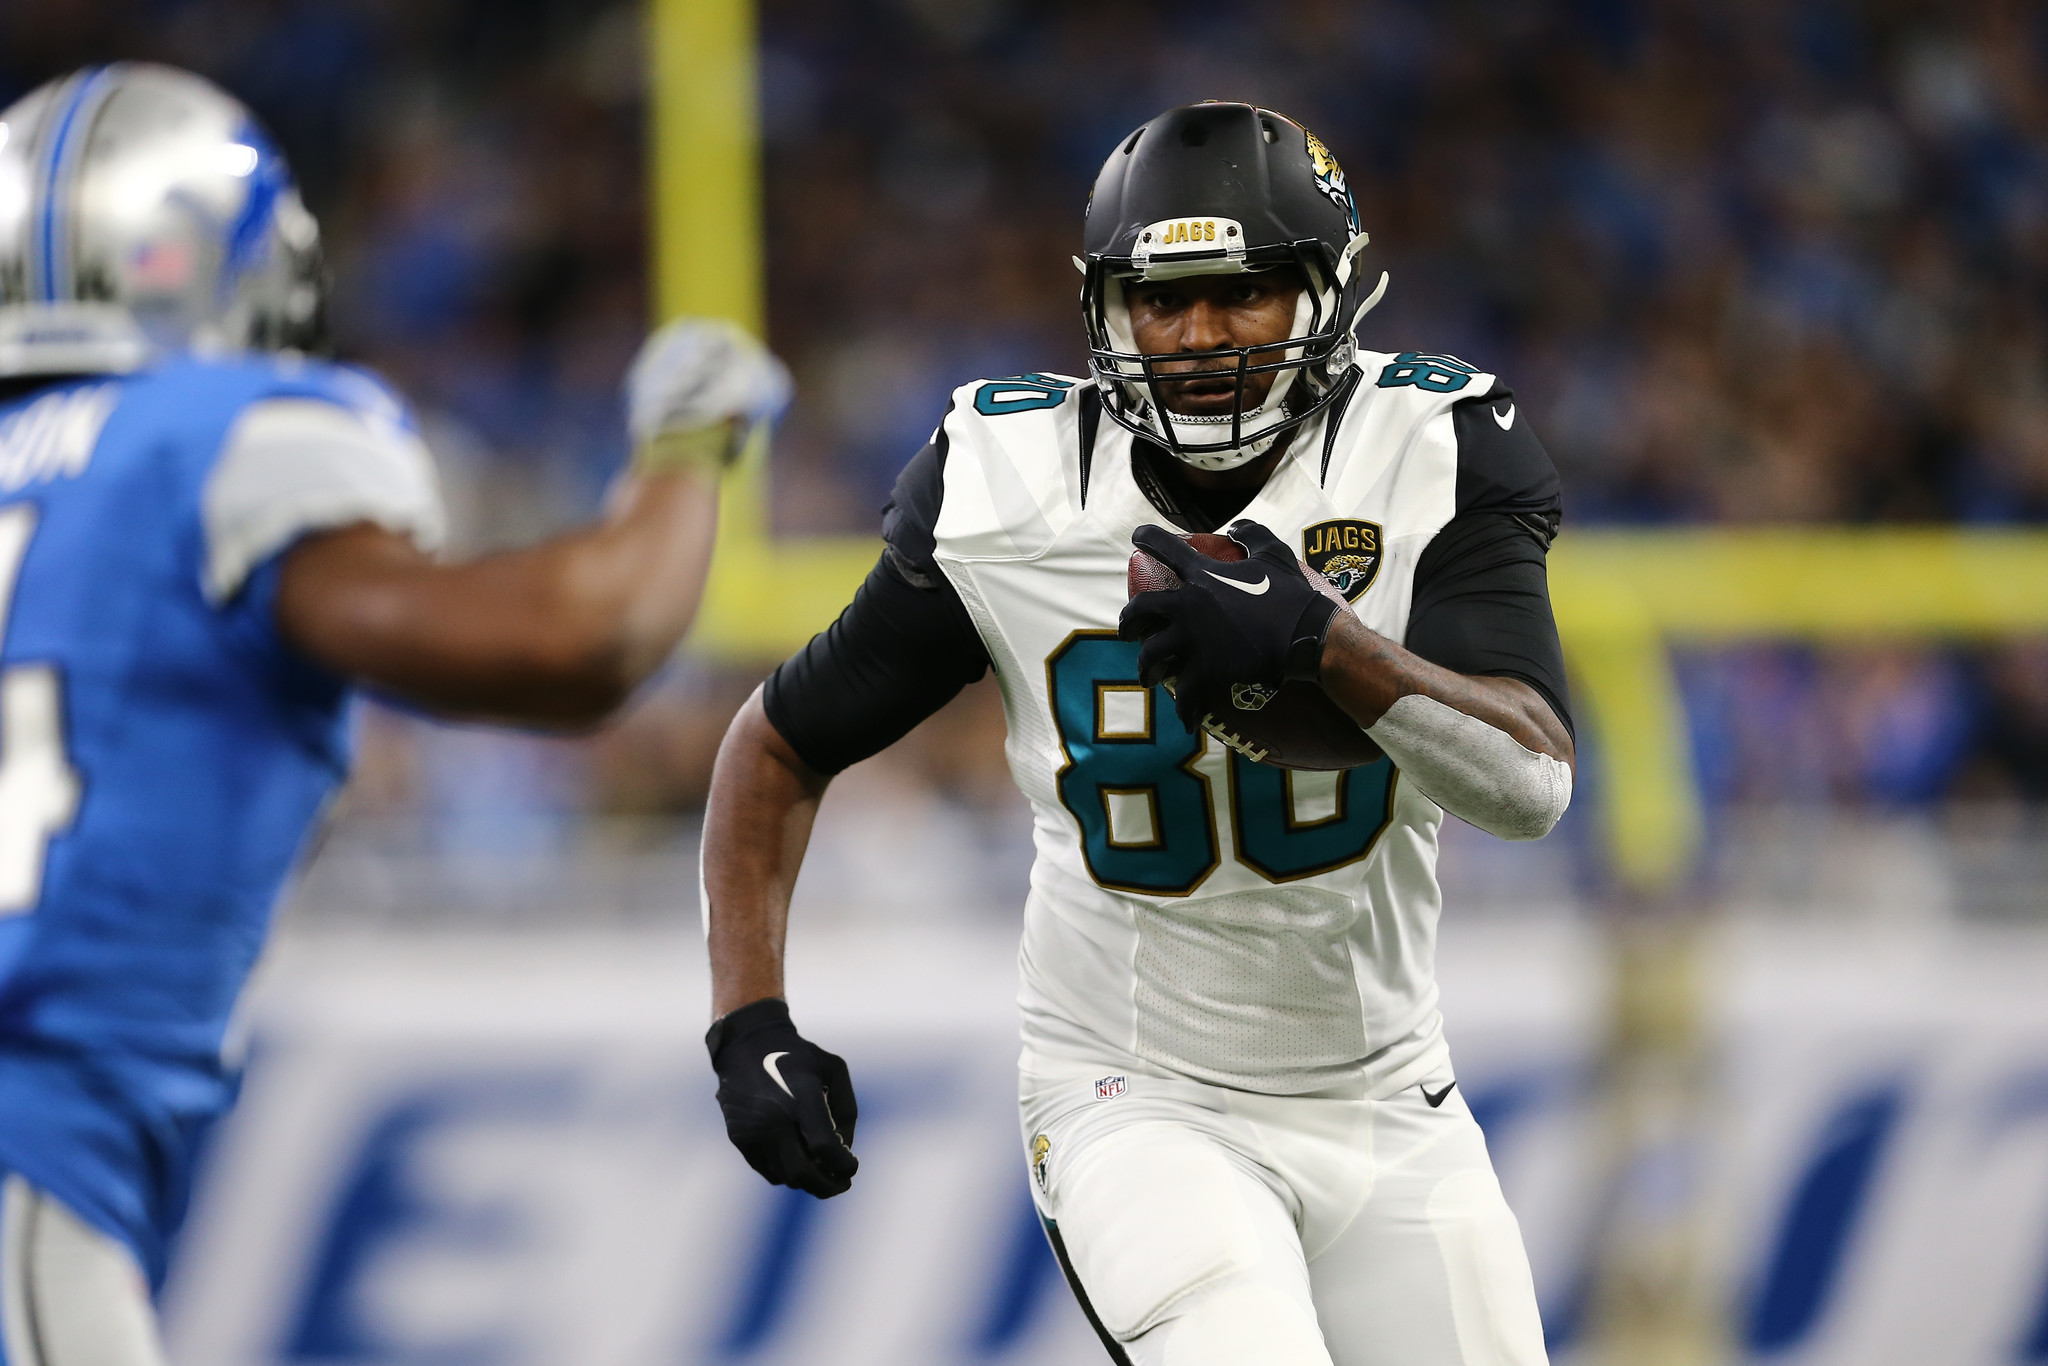 Fl-sp-dolphins-julius-thomas-contract-20170324